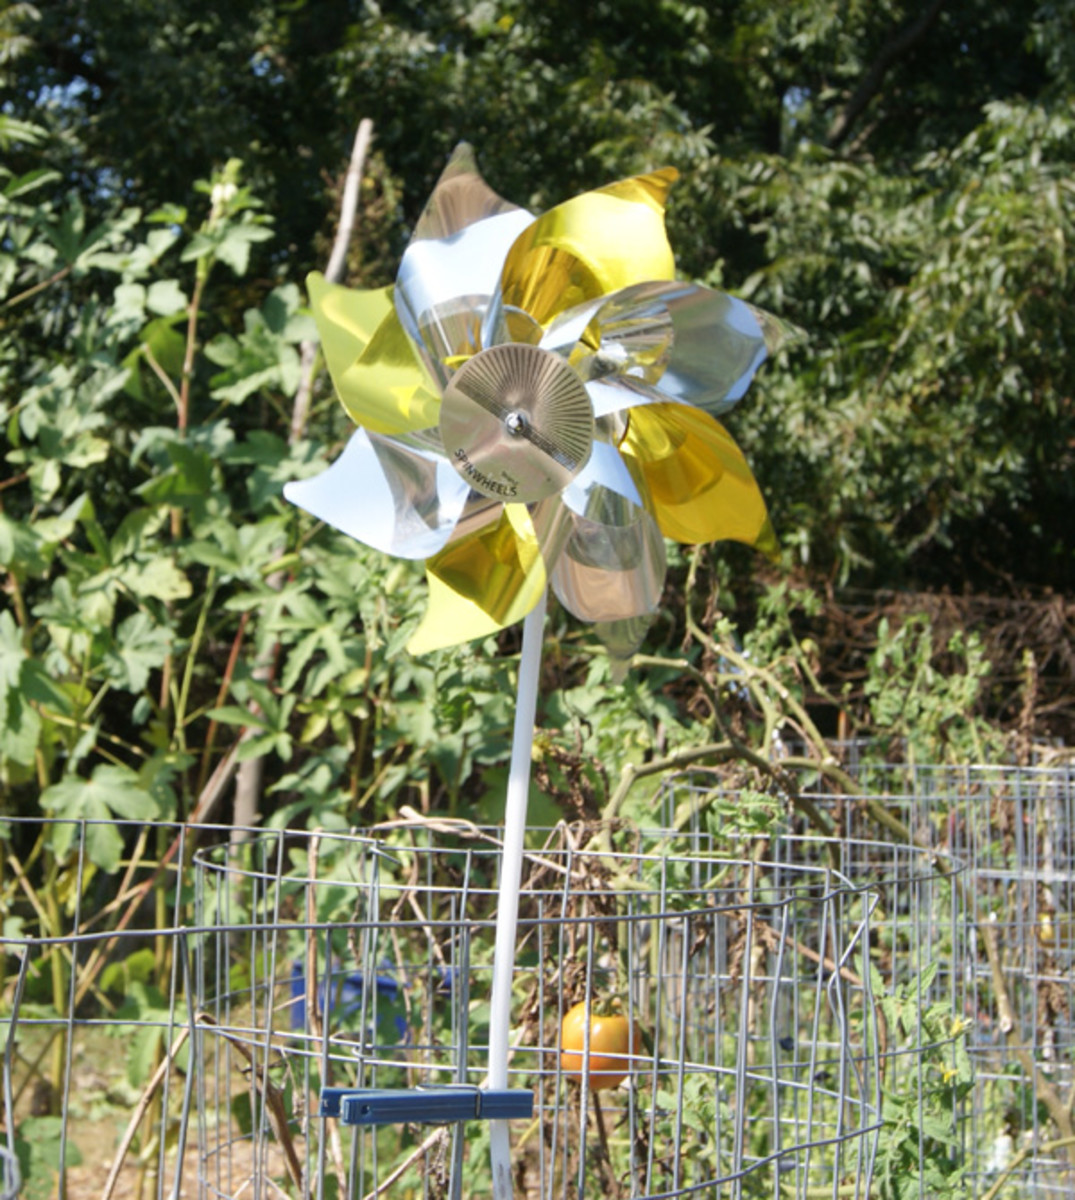 Pinwheels help keep birds away